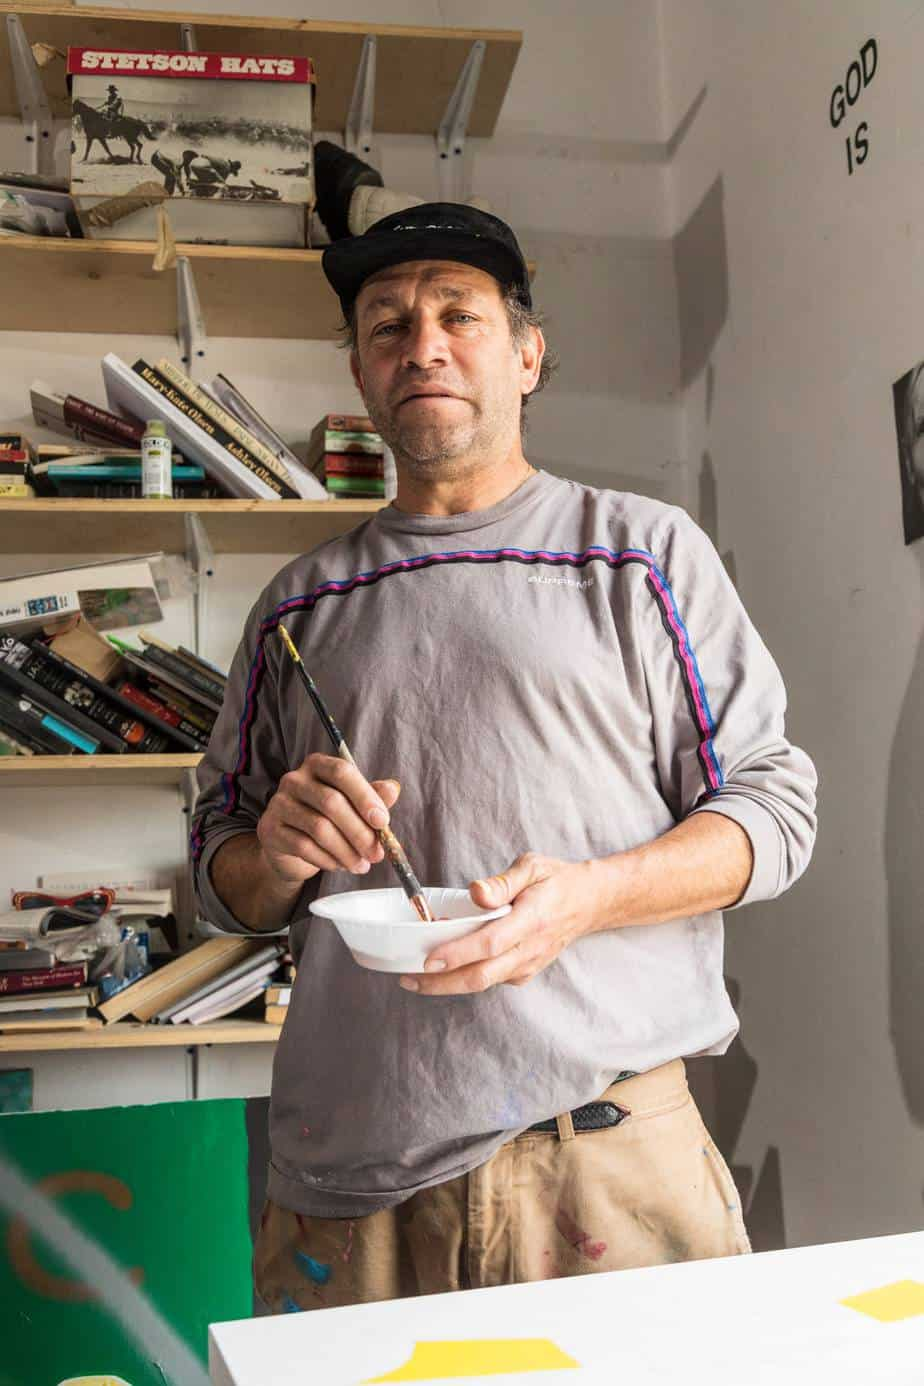 Mark Gonzales photoshoot for the GQ magazine.